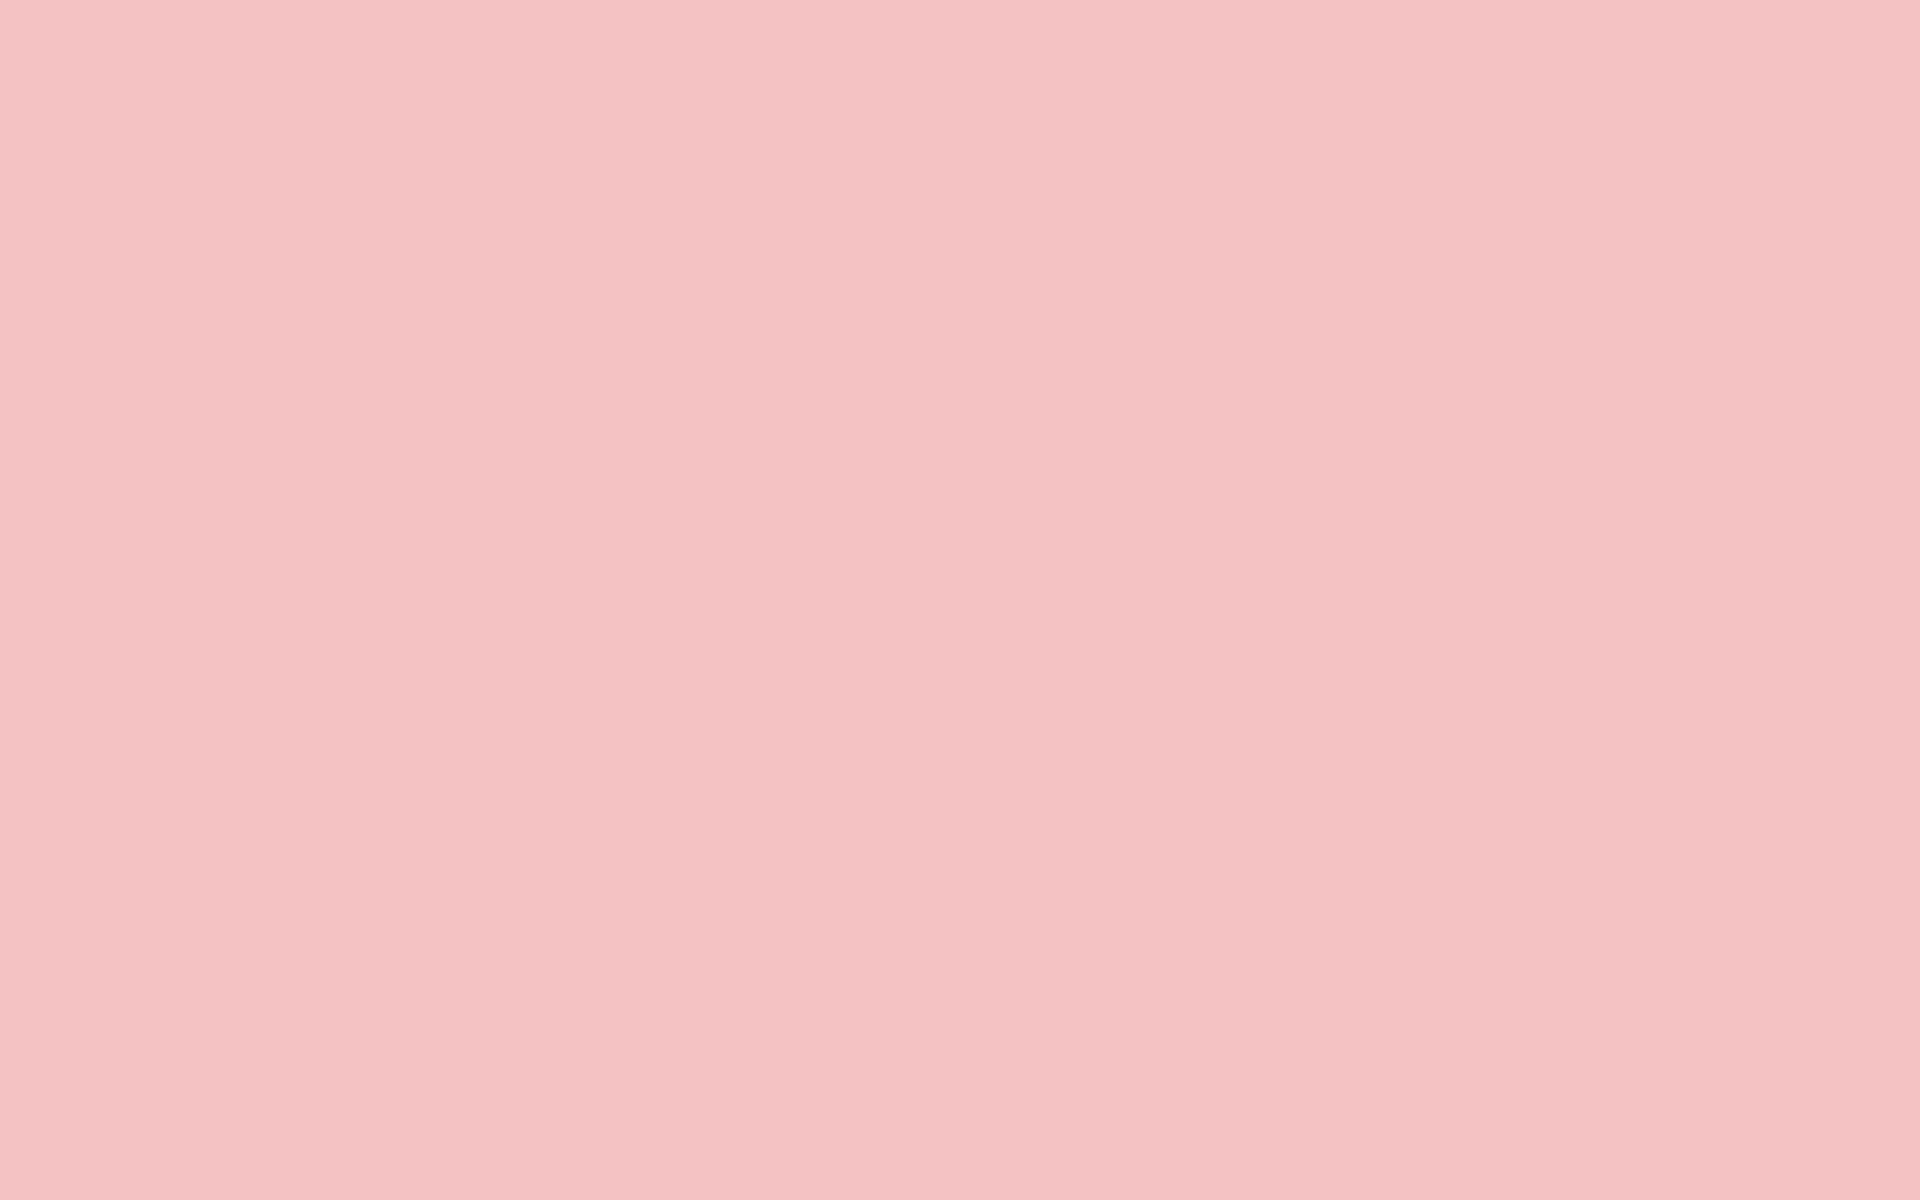 Light Pink   Wallpaper High Definition High Quality Widescreen 1920x1200